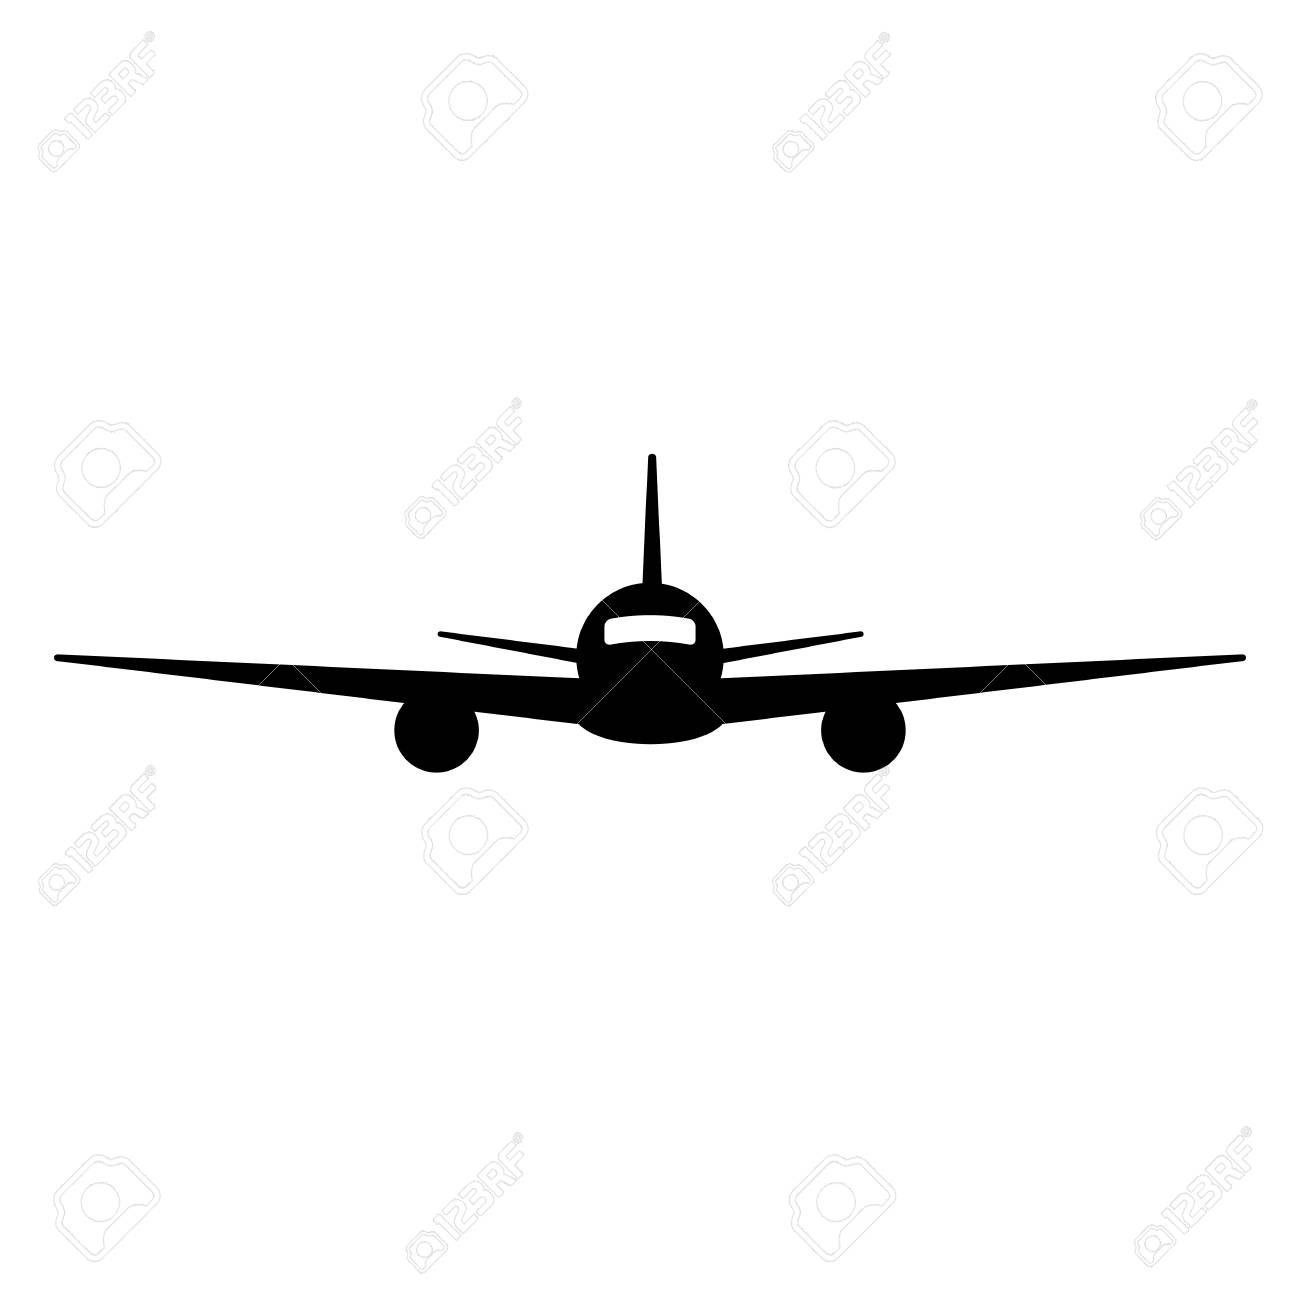 Black Isolated Silhouette Of Airplane On White Background Front